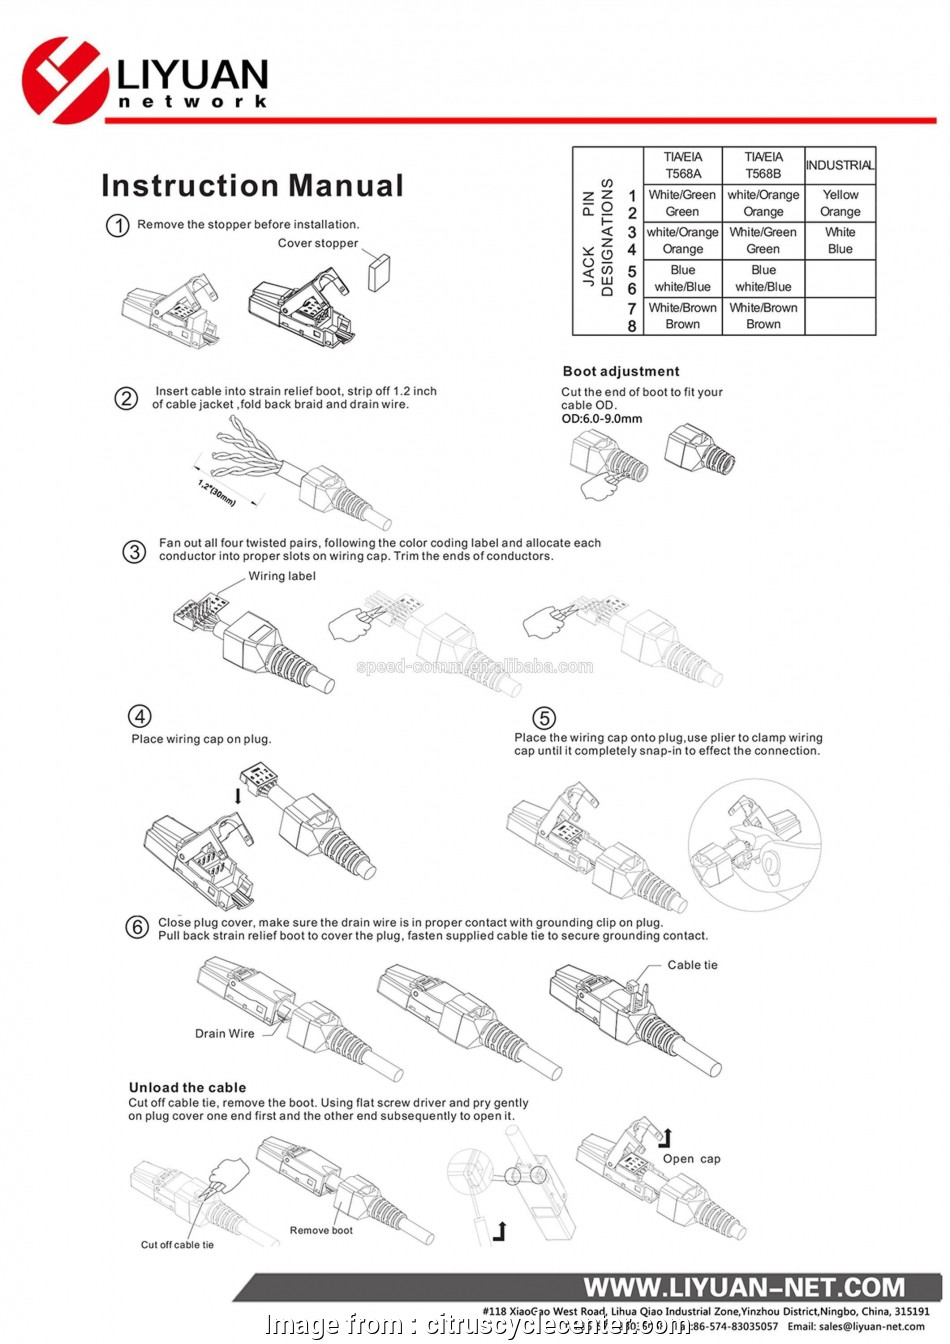 ethernet twisted pair wiring diagram simple wiring diagram  cat5 cable book of wiring diagram